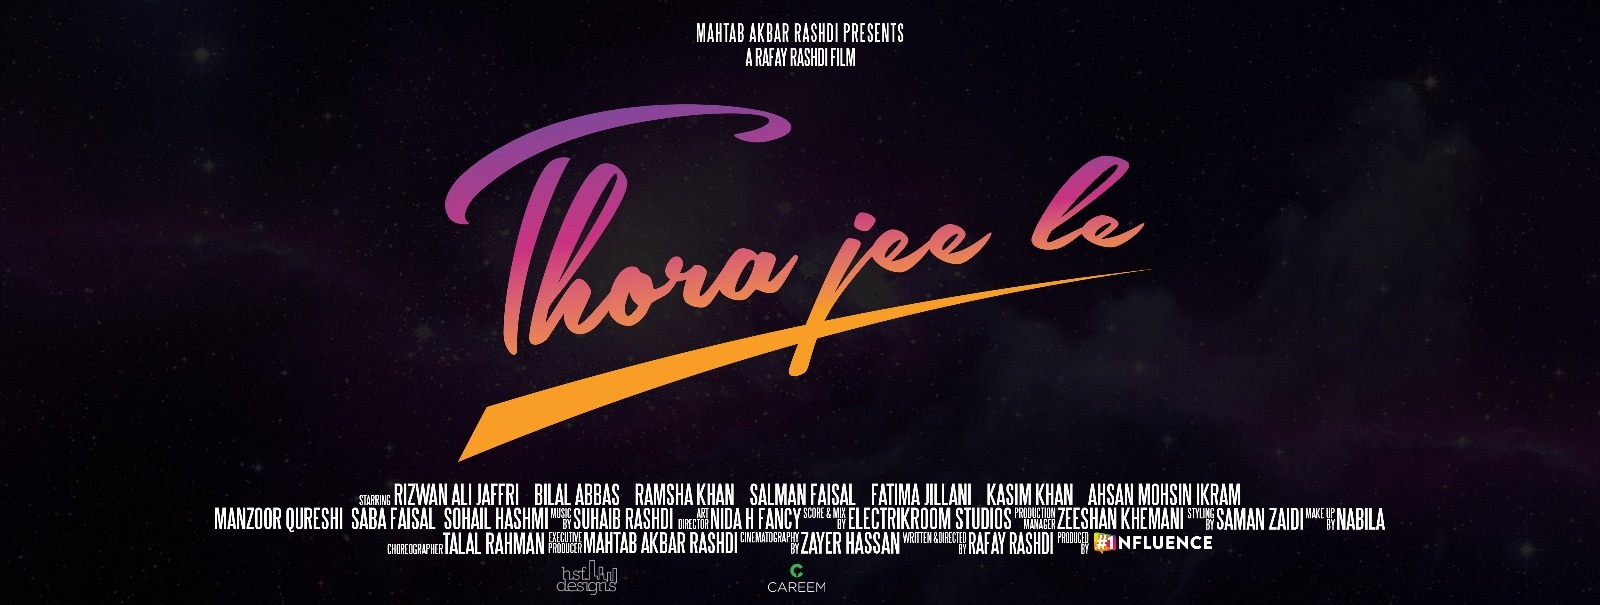 First Look of the Film Thora Jee Le!